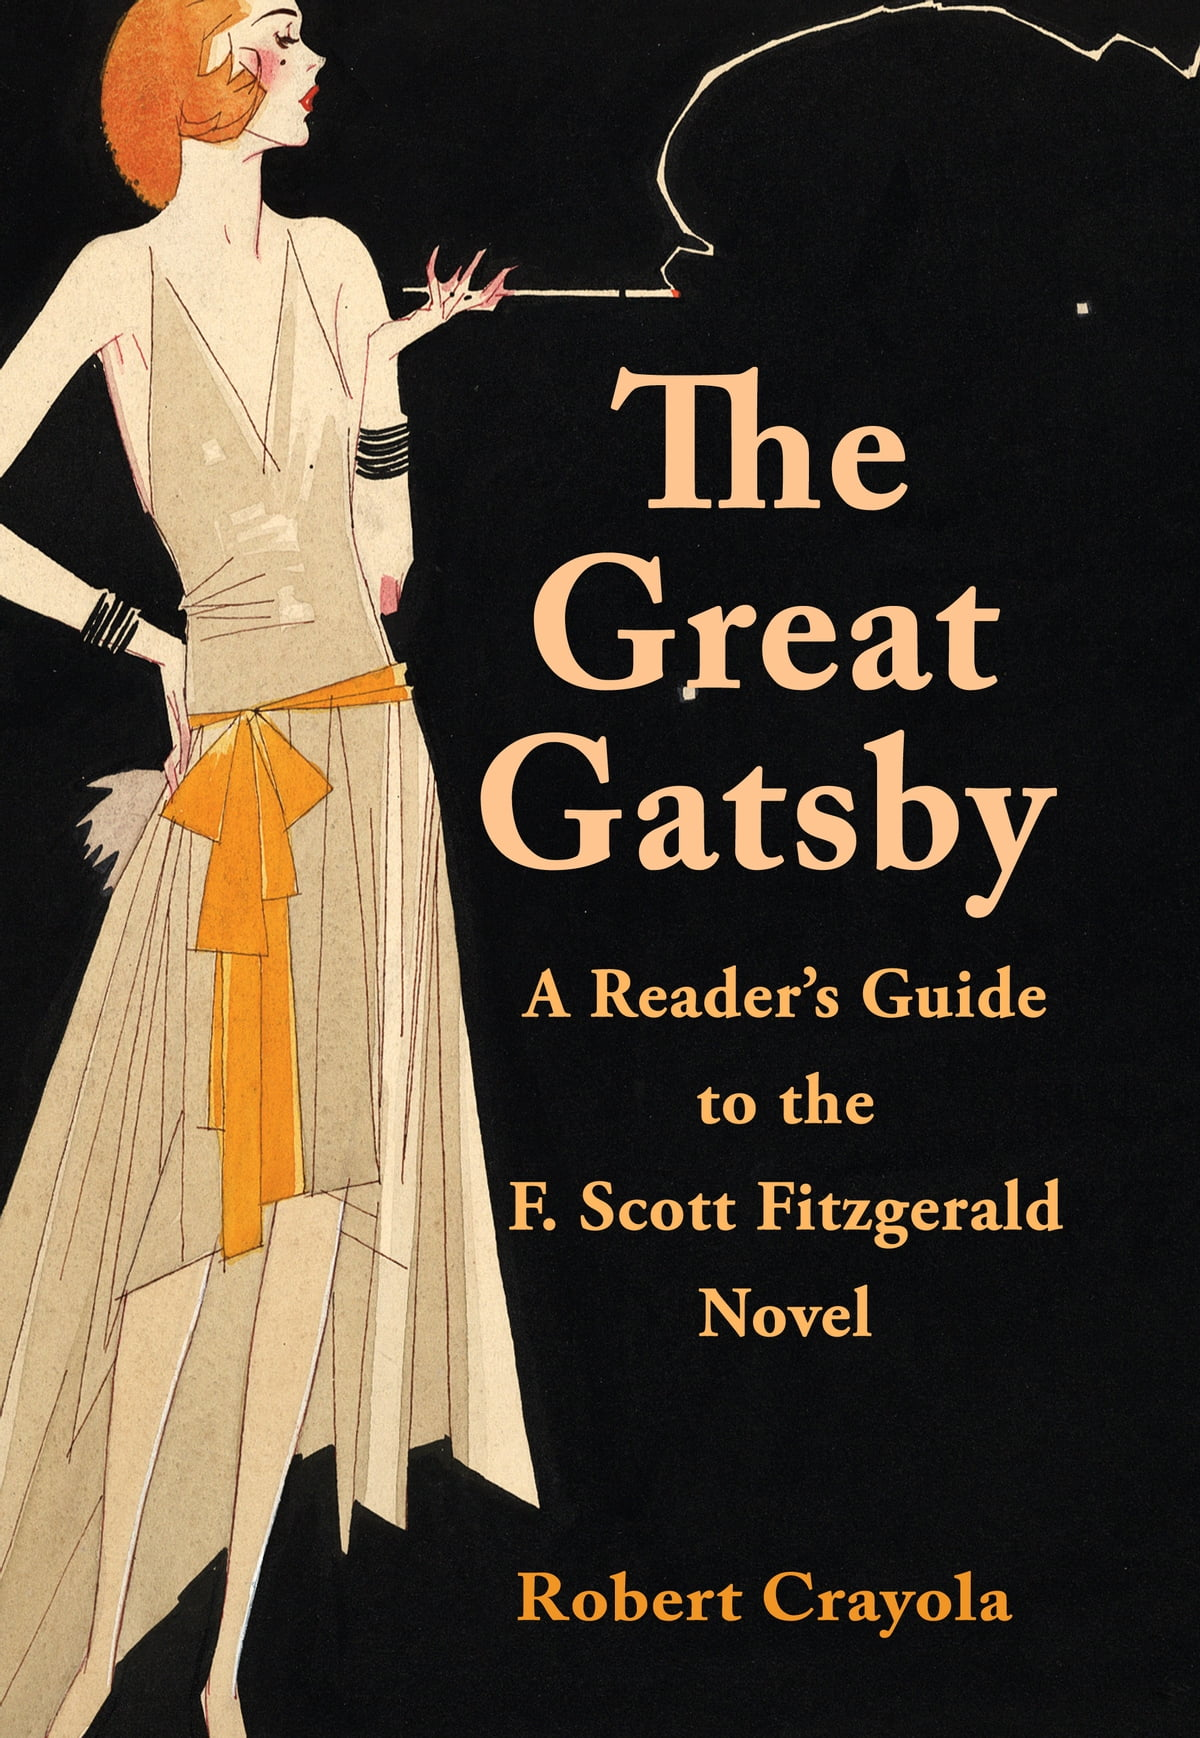 The Great Gatsby A Reader S Guide To The F Scott Fitzgerald Novel Ebook By Robert Crayola 9781301170135 Rakuten Kobo United States